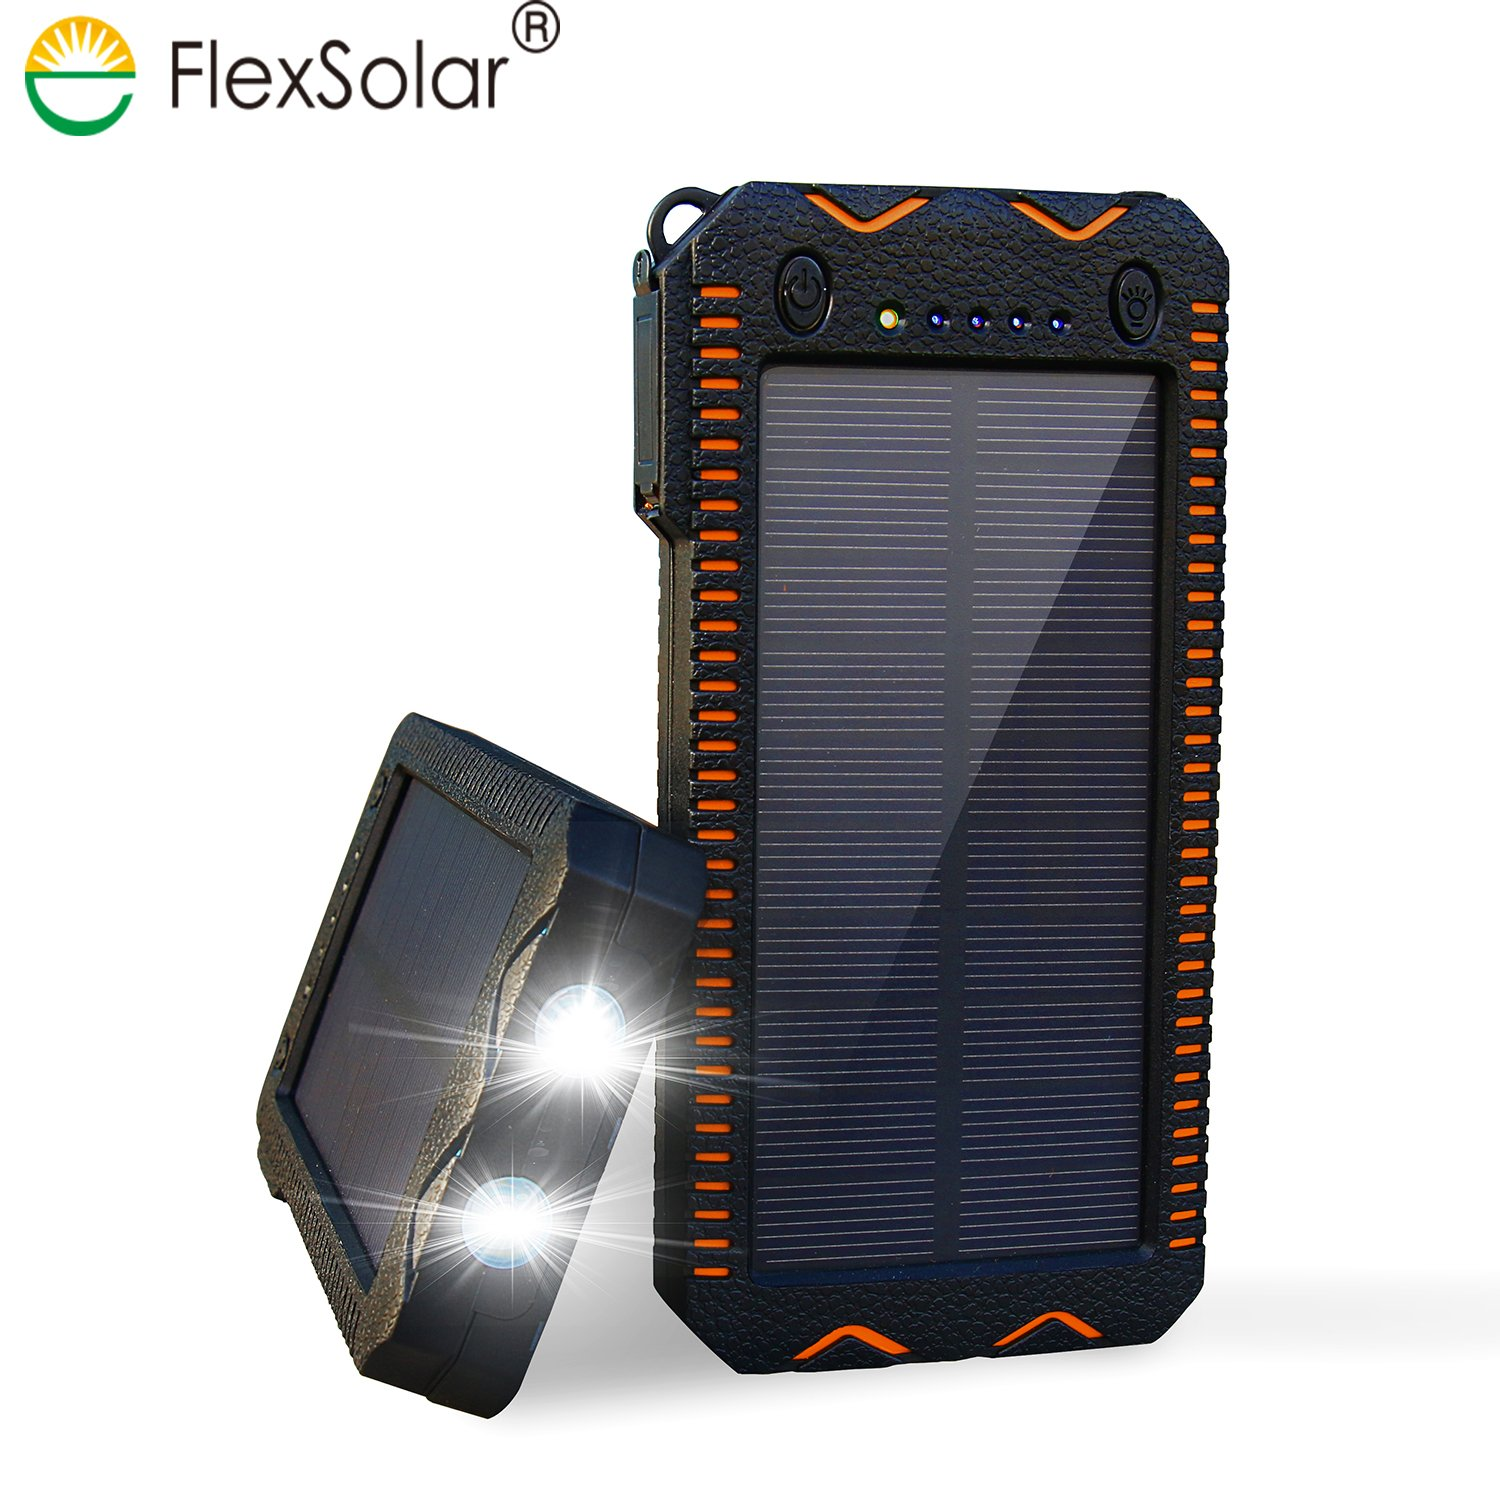 FlexSolar Solar Charger, 12000mAh Portable Solar Power Bank with Cigarette Liter, Dual USB Ports, Dual LED Lights, External Battery Power Bank for iPhone, Android and other Smart Device (Orange)